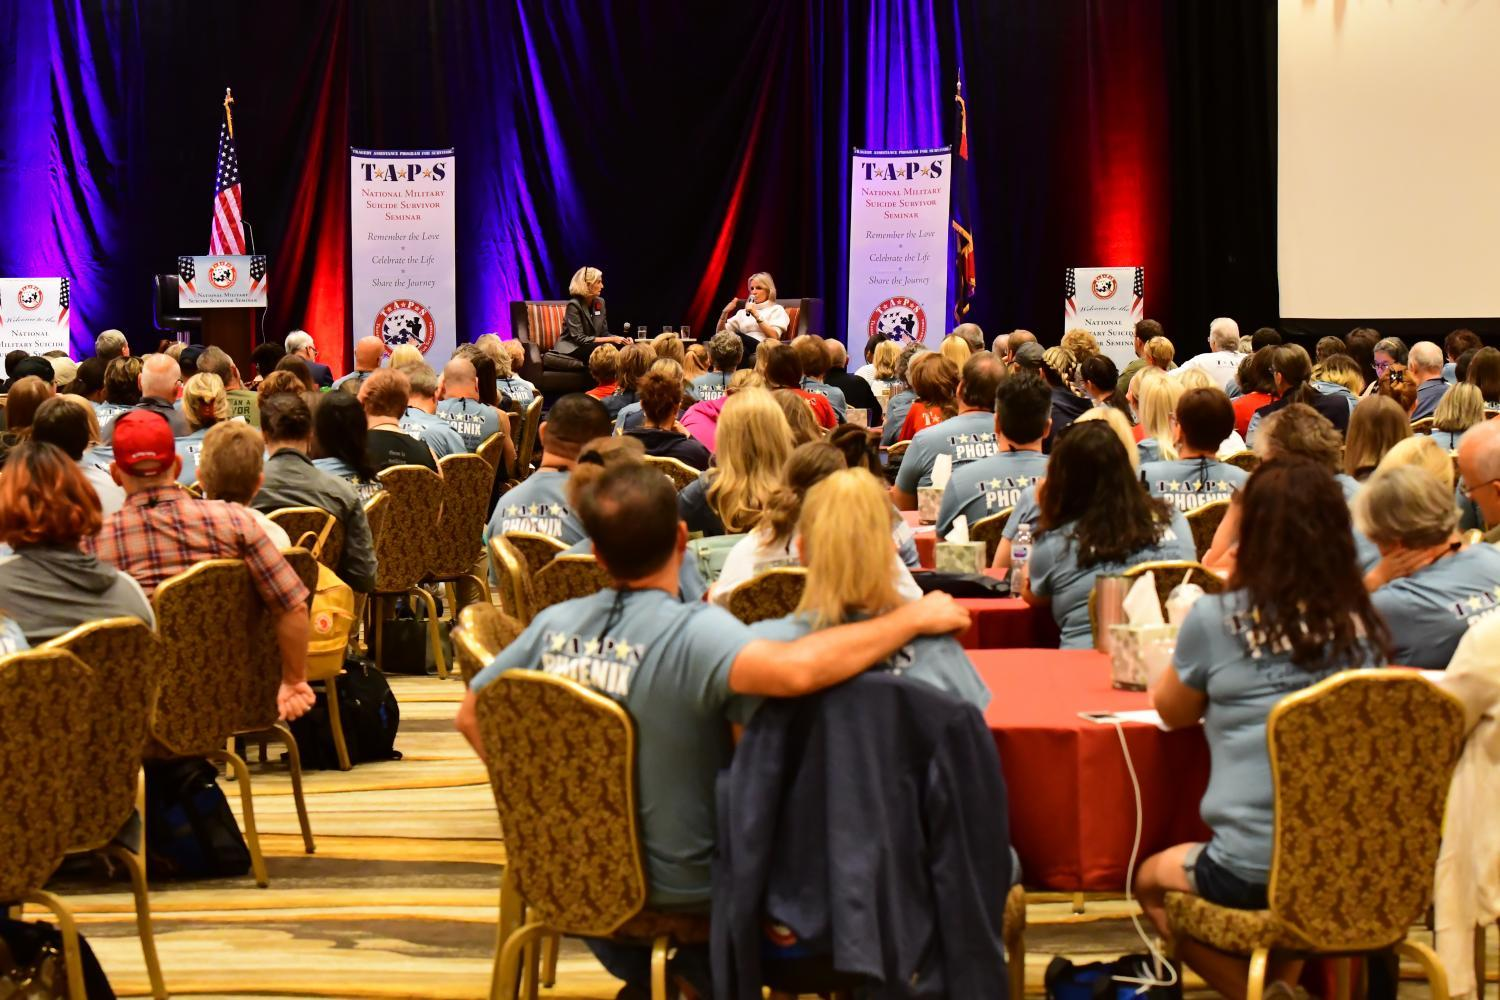 Conference attendees at the 2019 Tragedy Assistance Program for Survivors (TAPS) conference in Phoenix, Oct. 12, 2019.